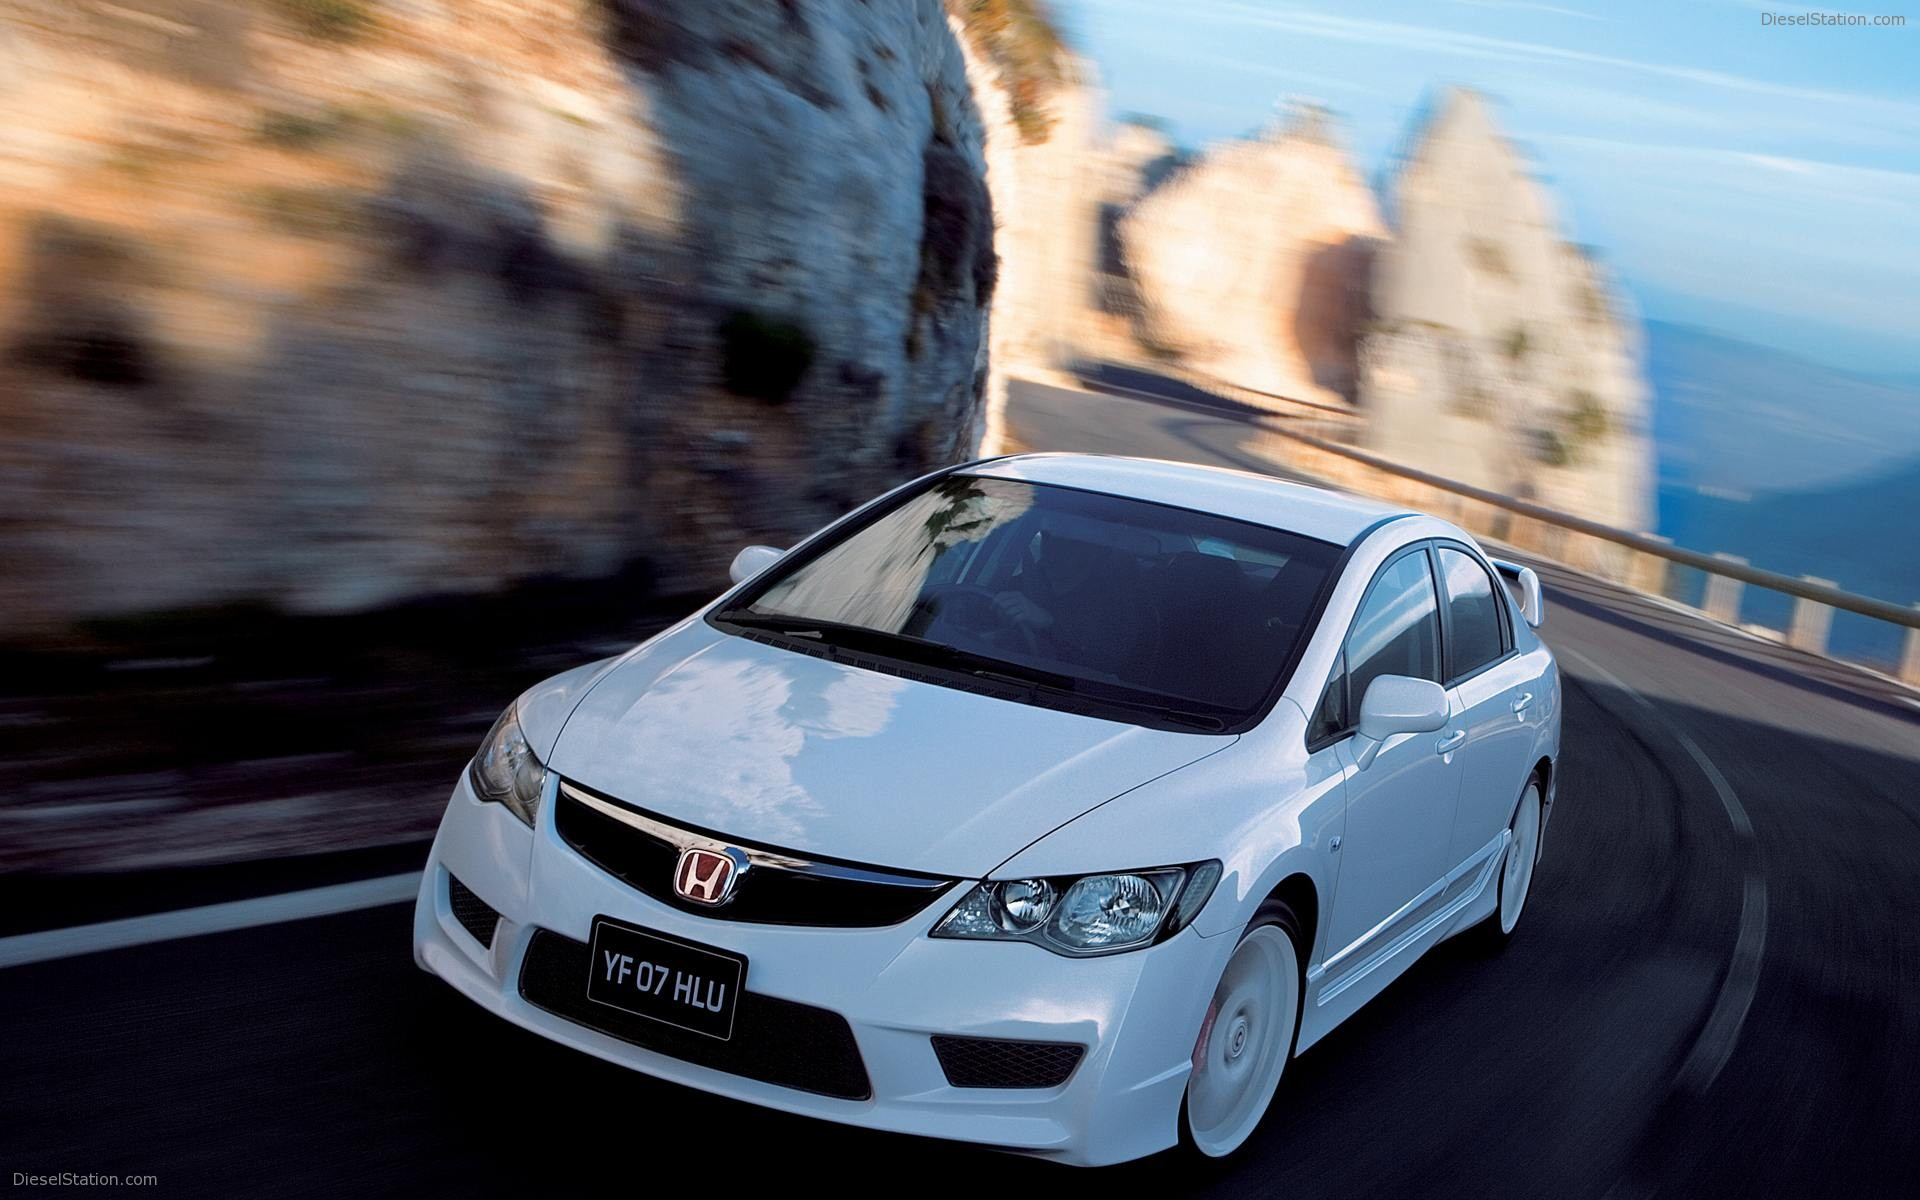 43 units of Honda Civic Wallpaper